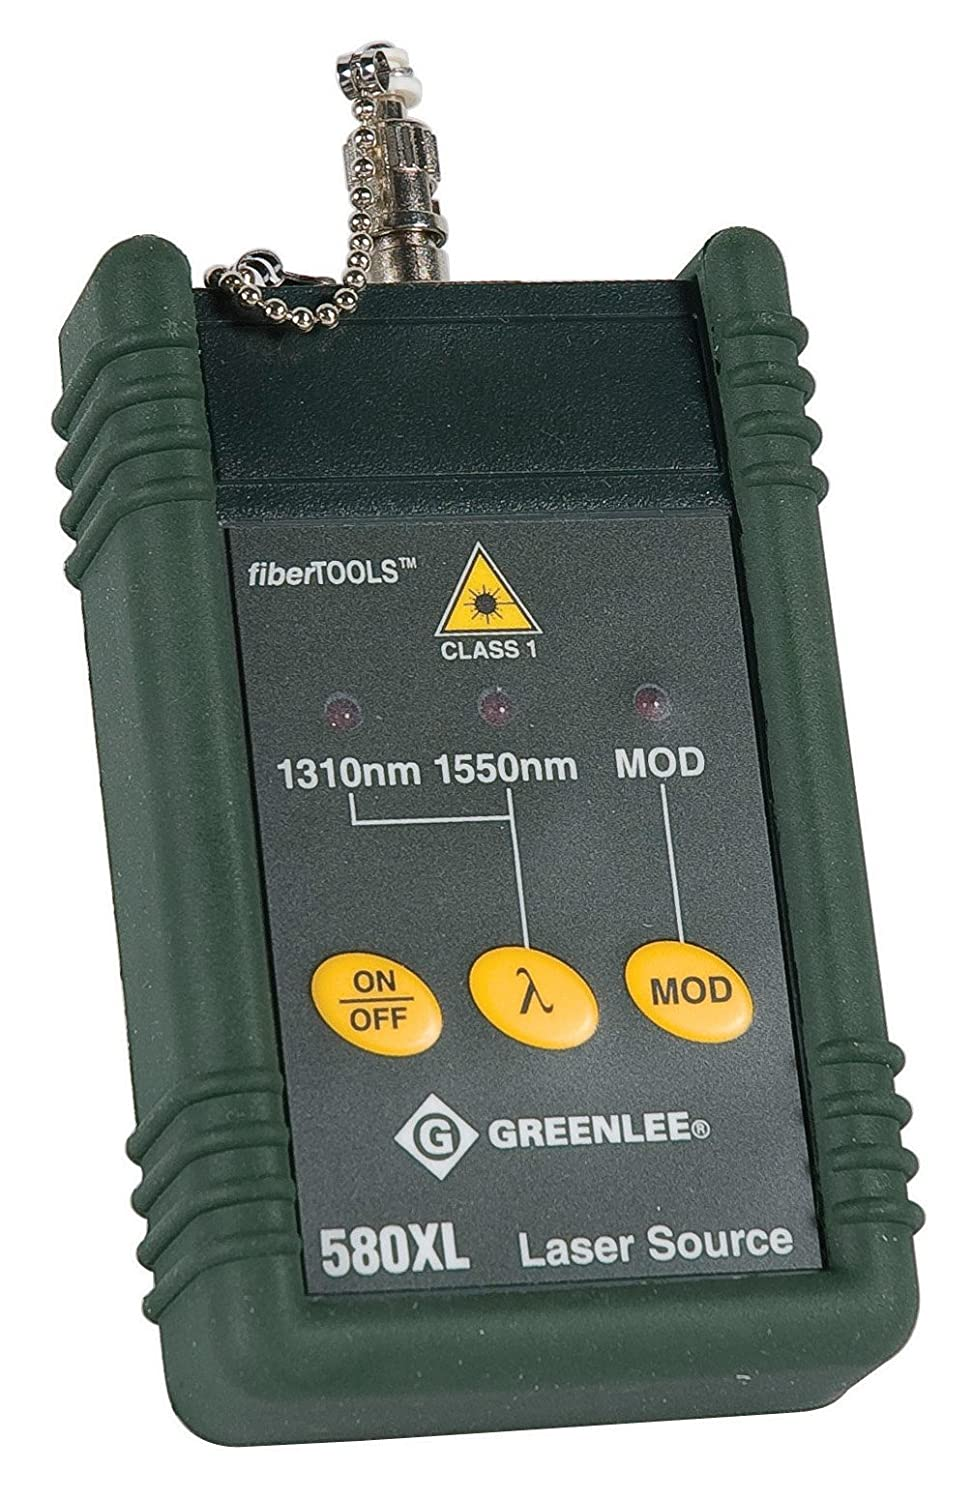 Greenlee 580XL ST Laser Source with ST Interface 1310 1550nm